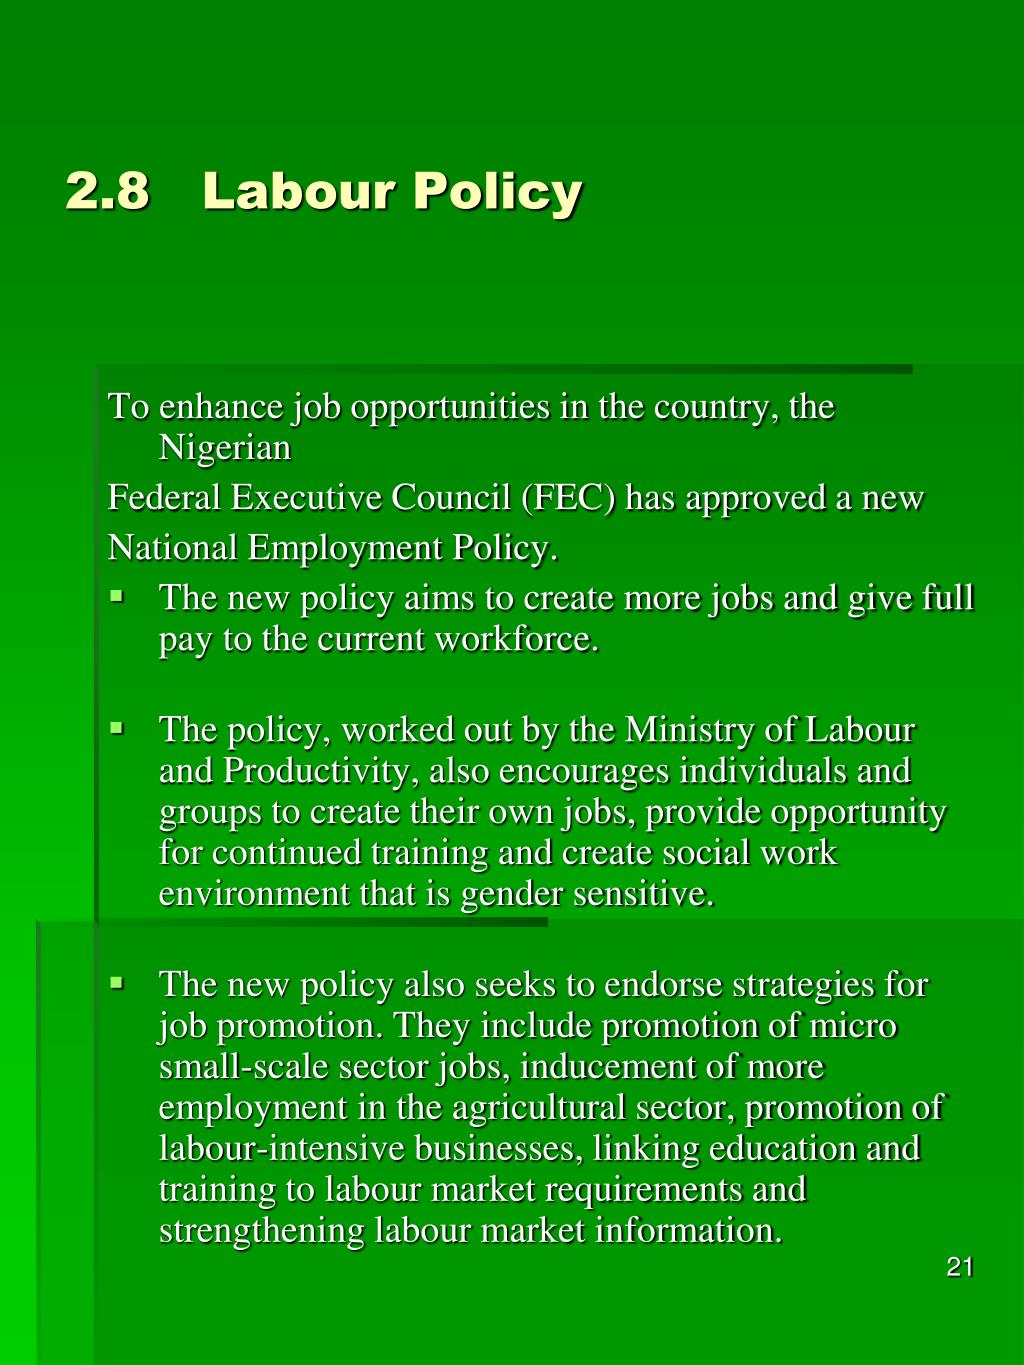 2.8Labour Policy